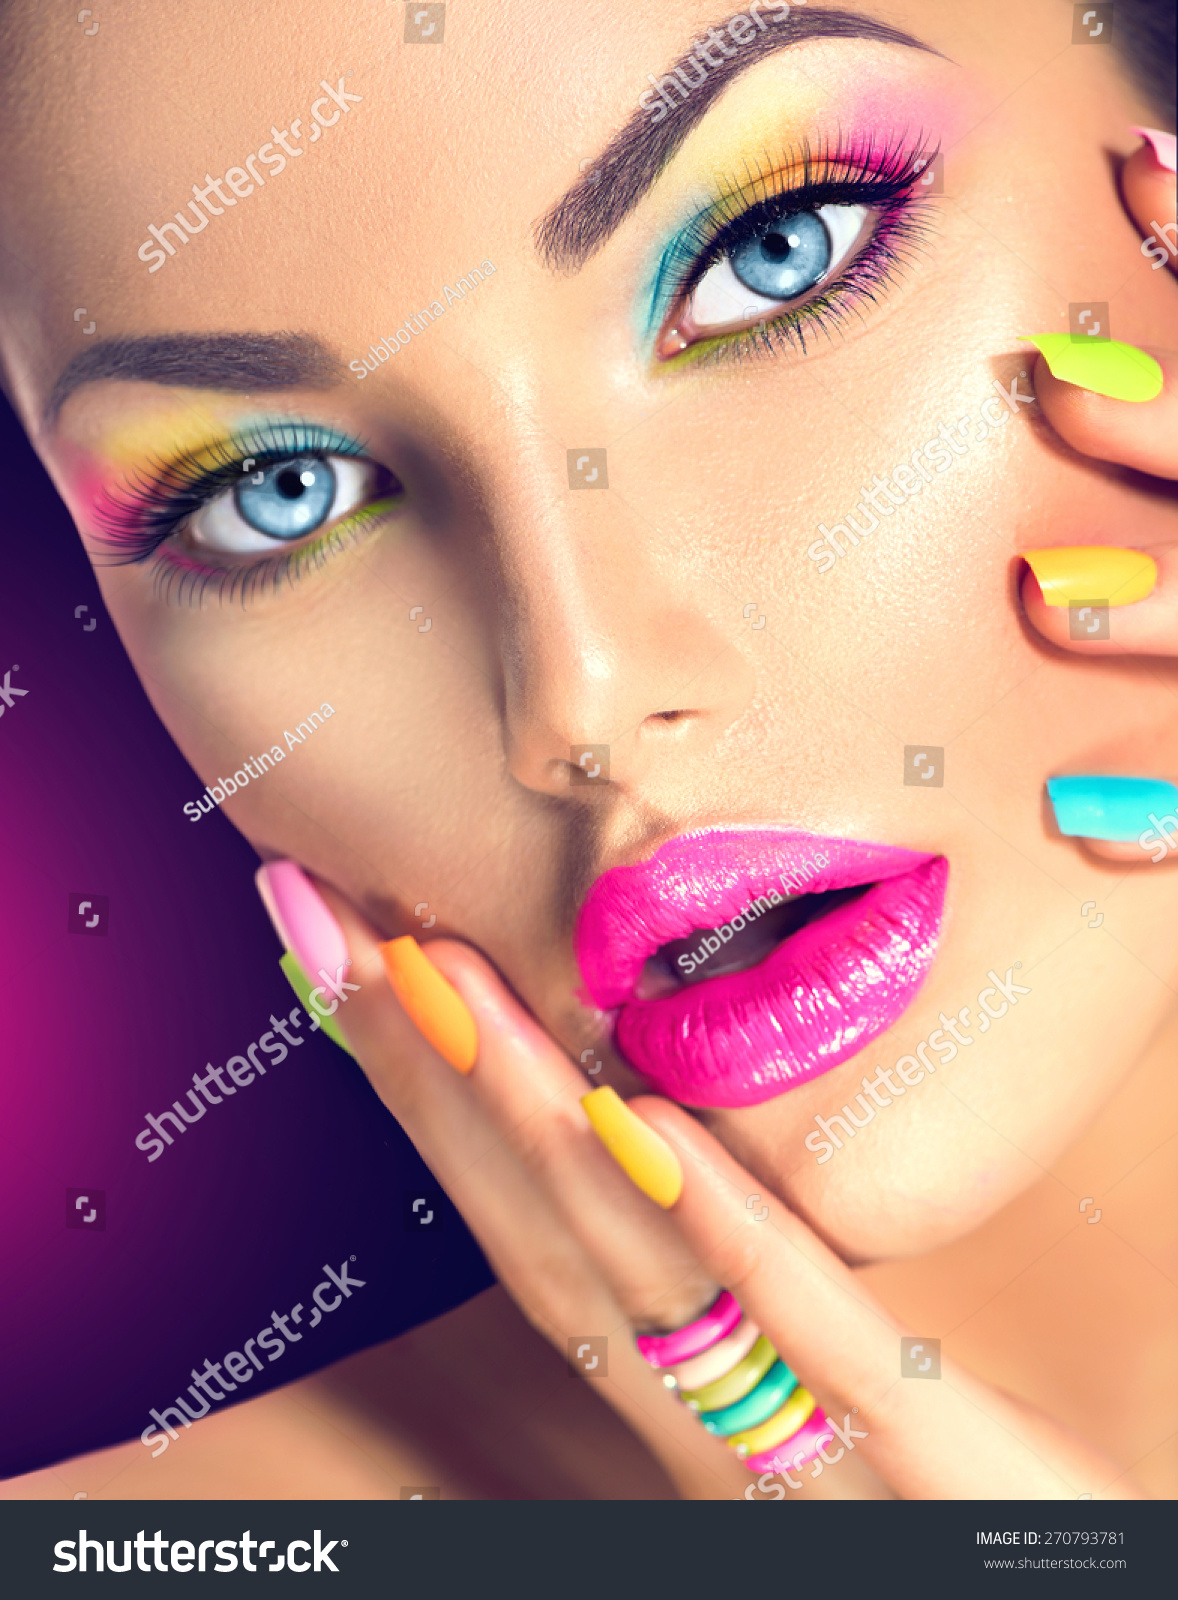 Beauty Girl Face With Vivid Makeup And Colorful Nail